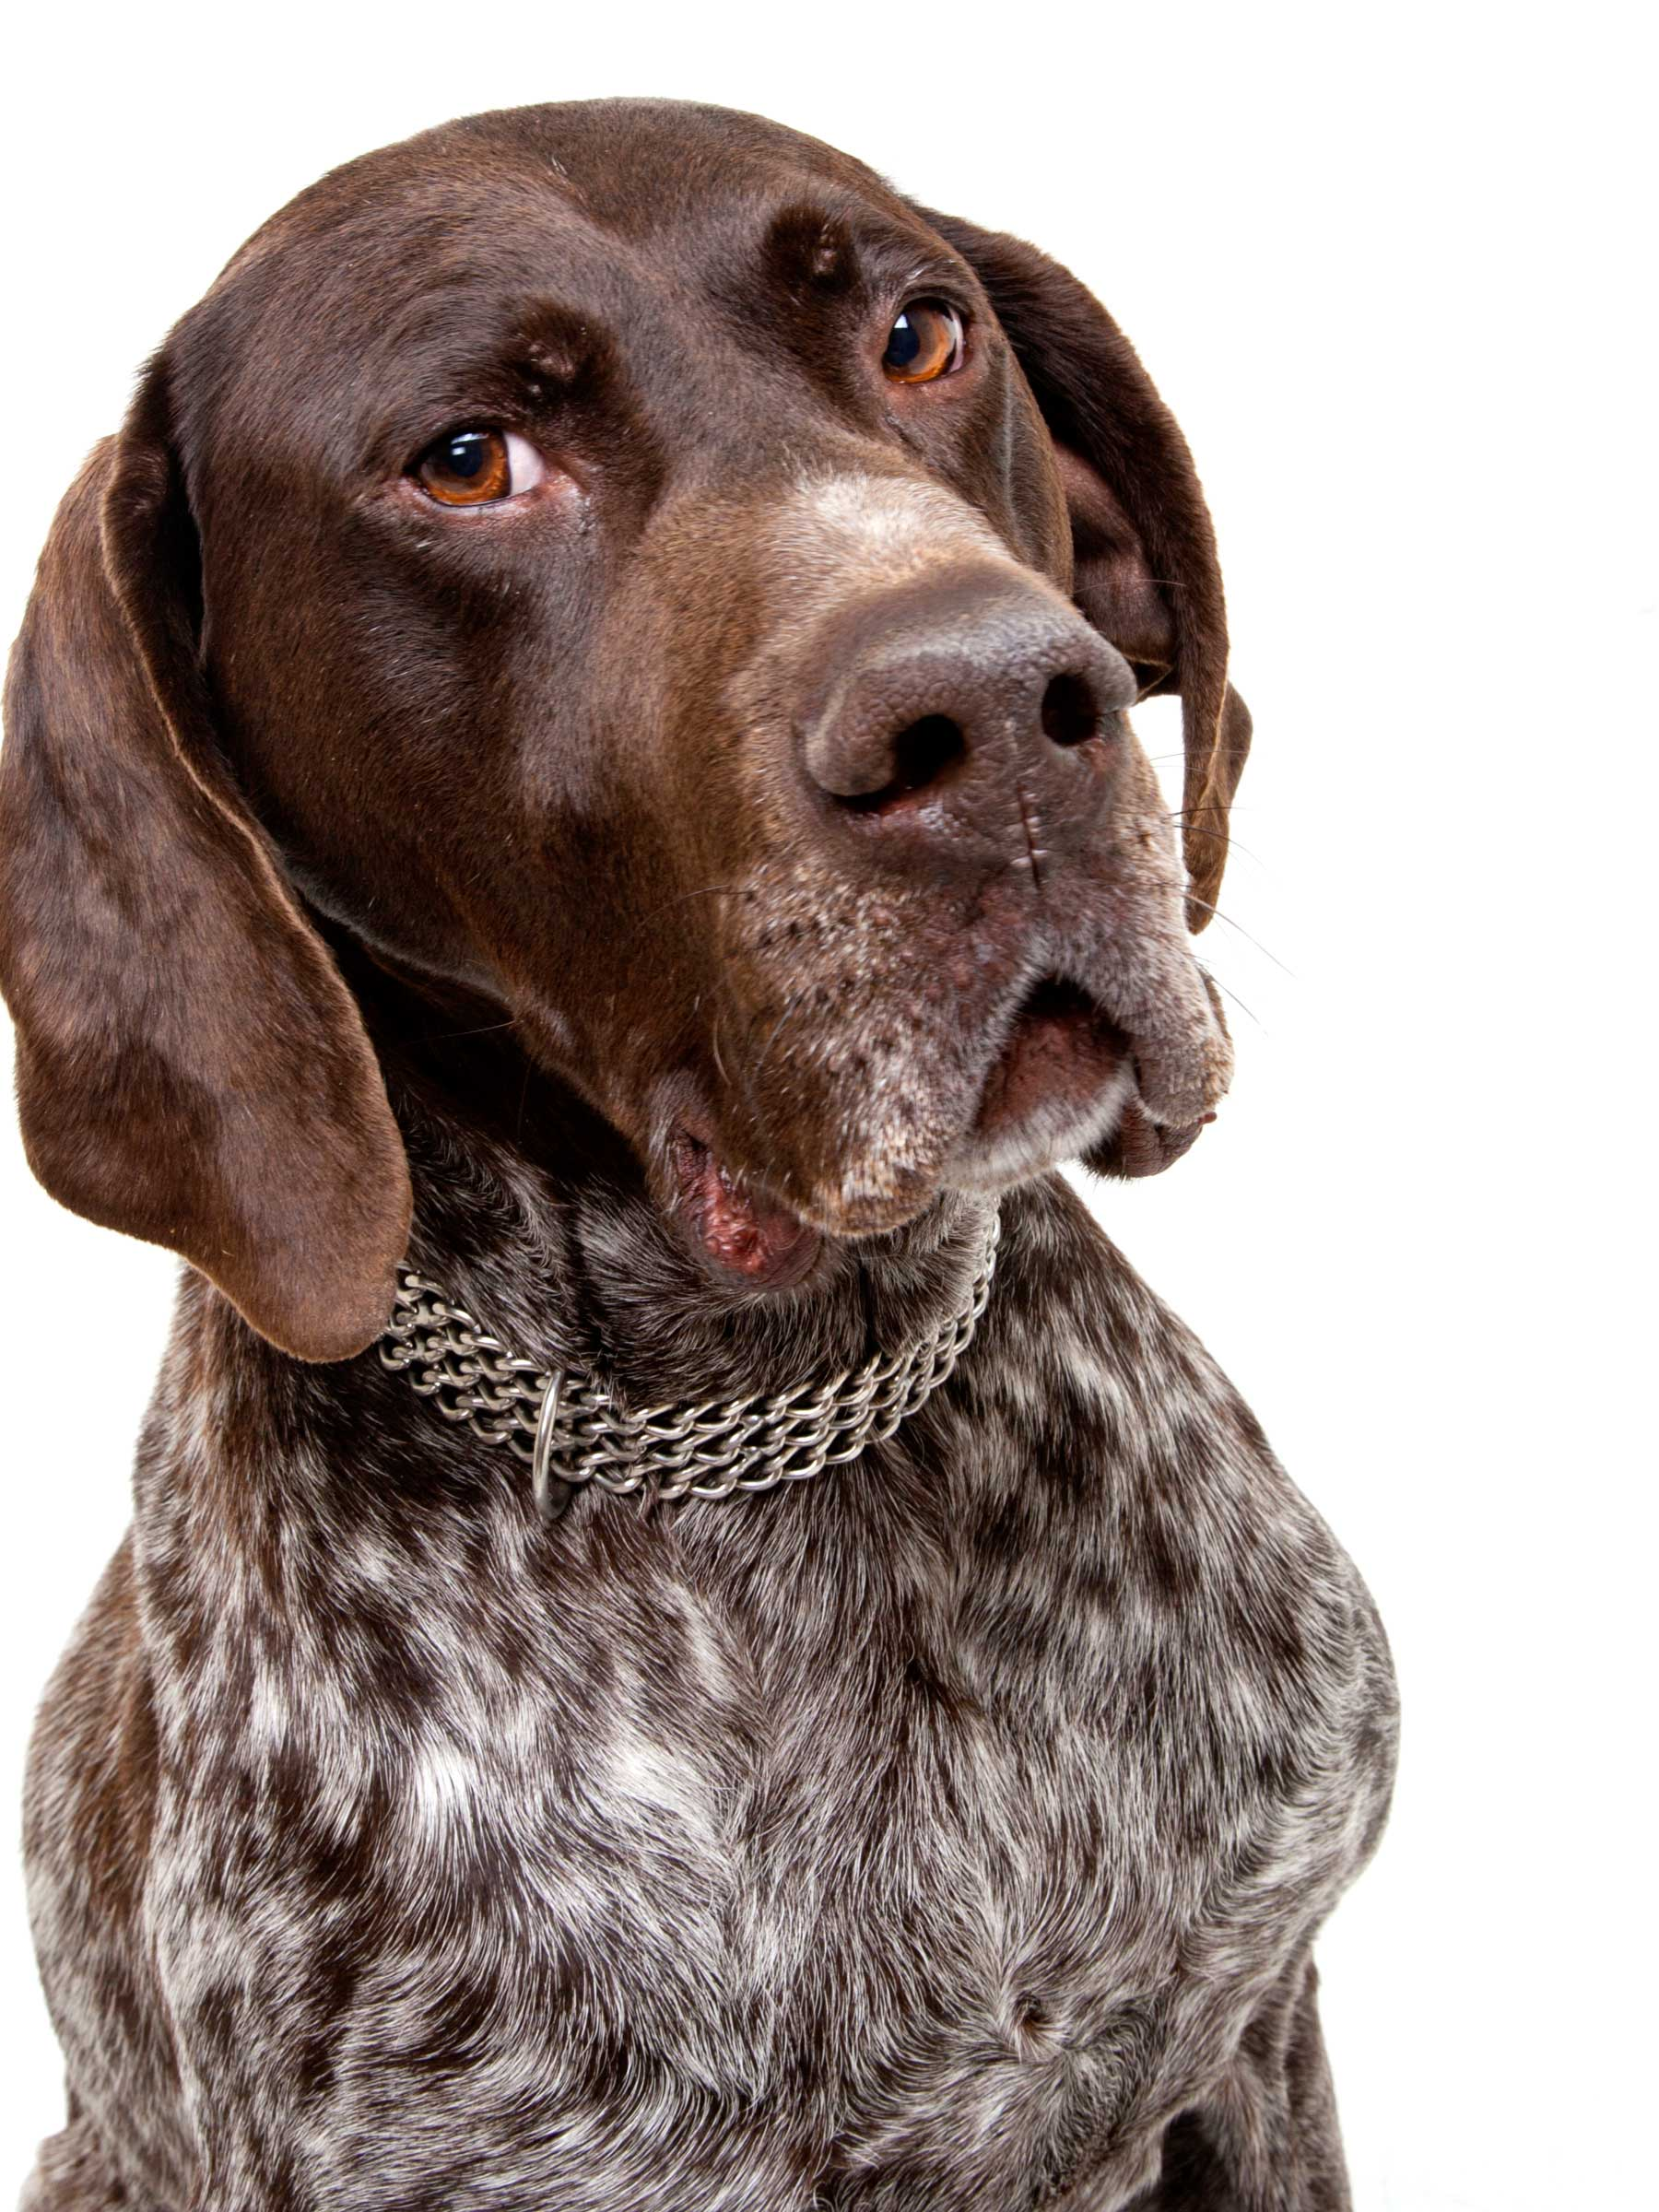 05-Pets-Dog-Brown-Serious-Philip-Murray-Photography-Dublin